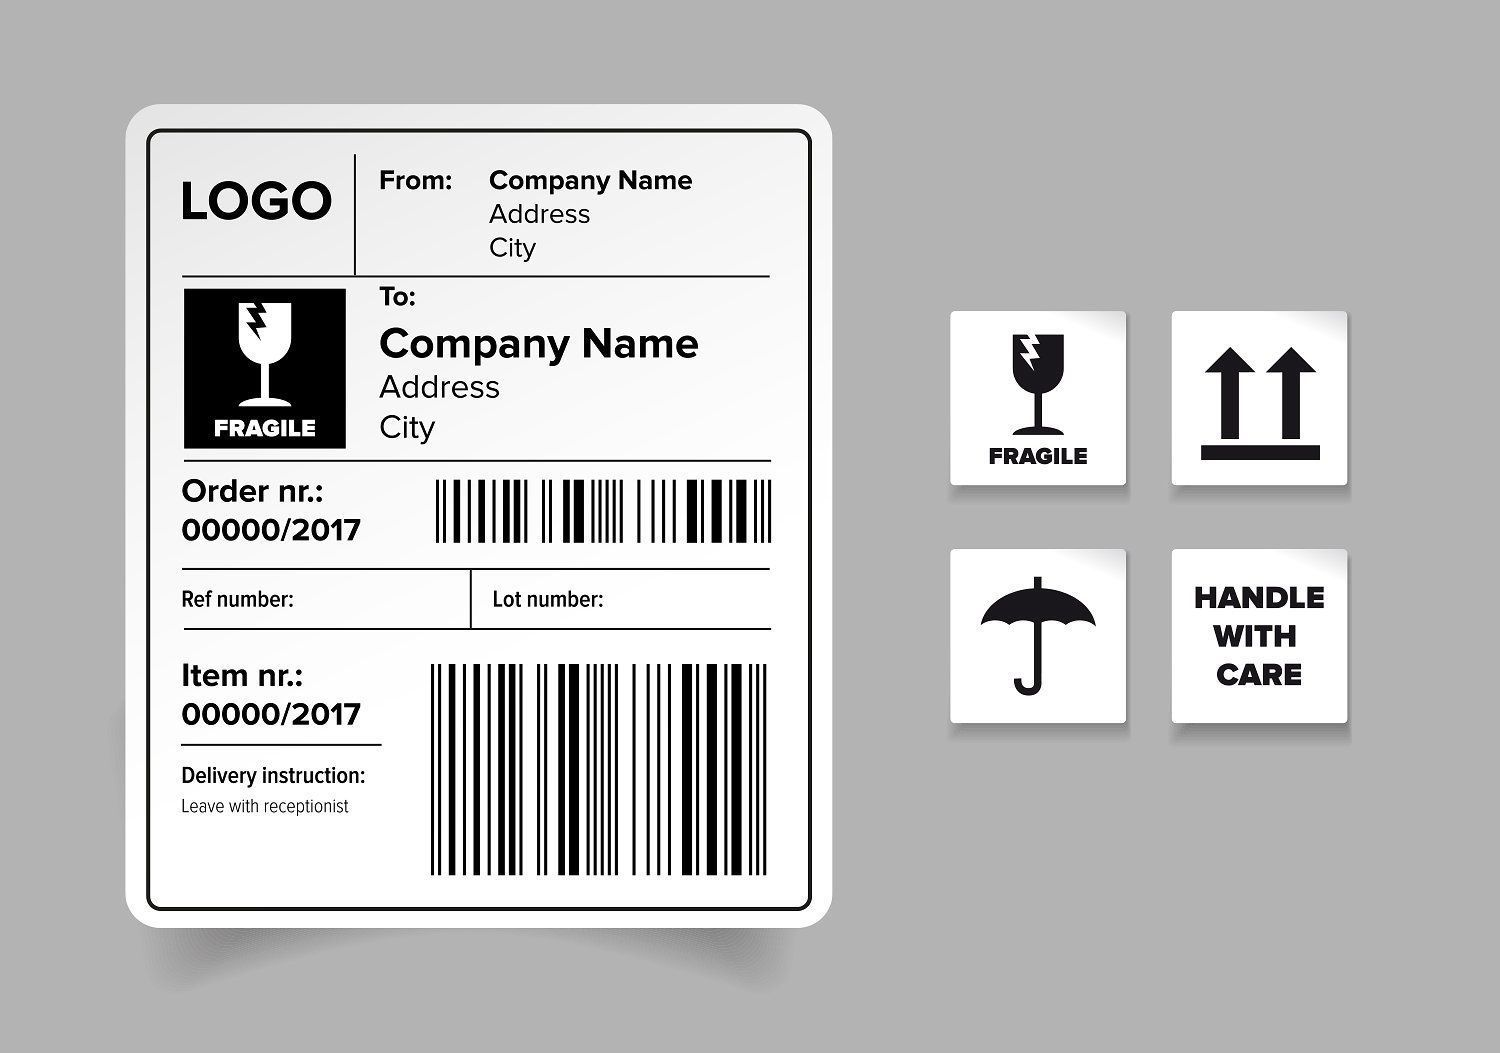 007 Outstanding Free Shipping Label Template Photo  Templates Usp Avery WordFull